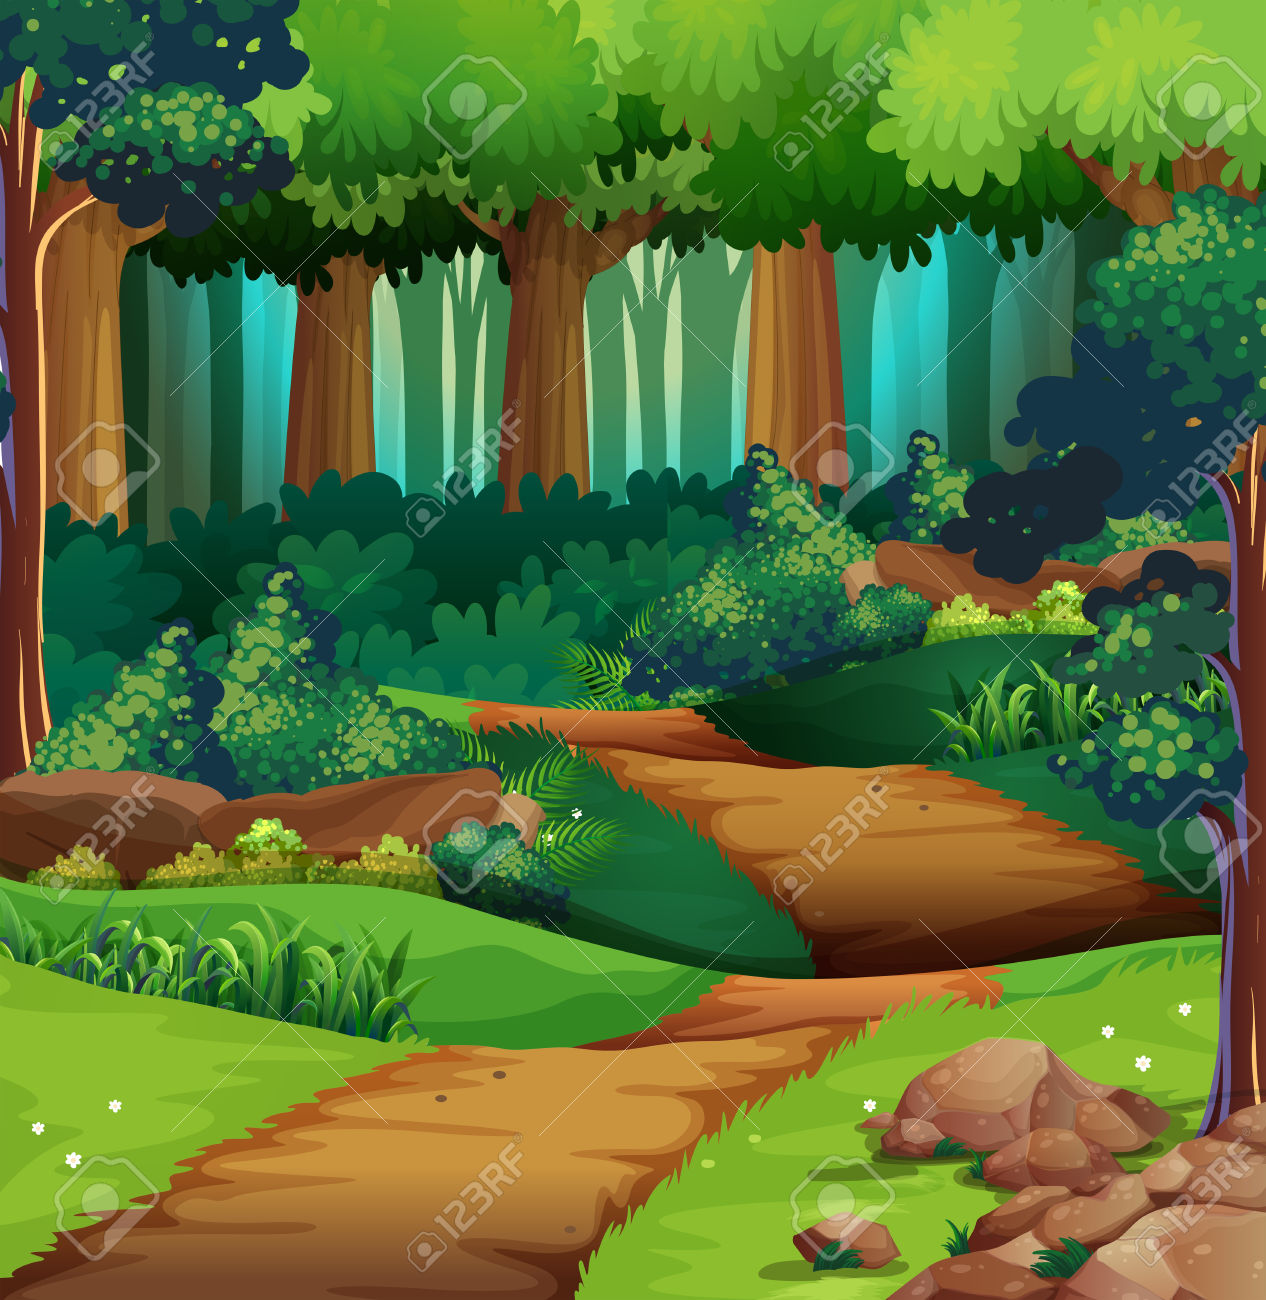 Forest Scene With Dirt Trail Illustration Royalty Free Cliparts.